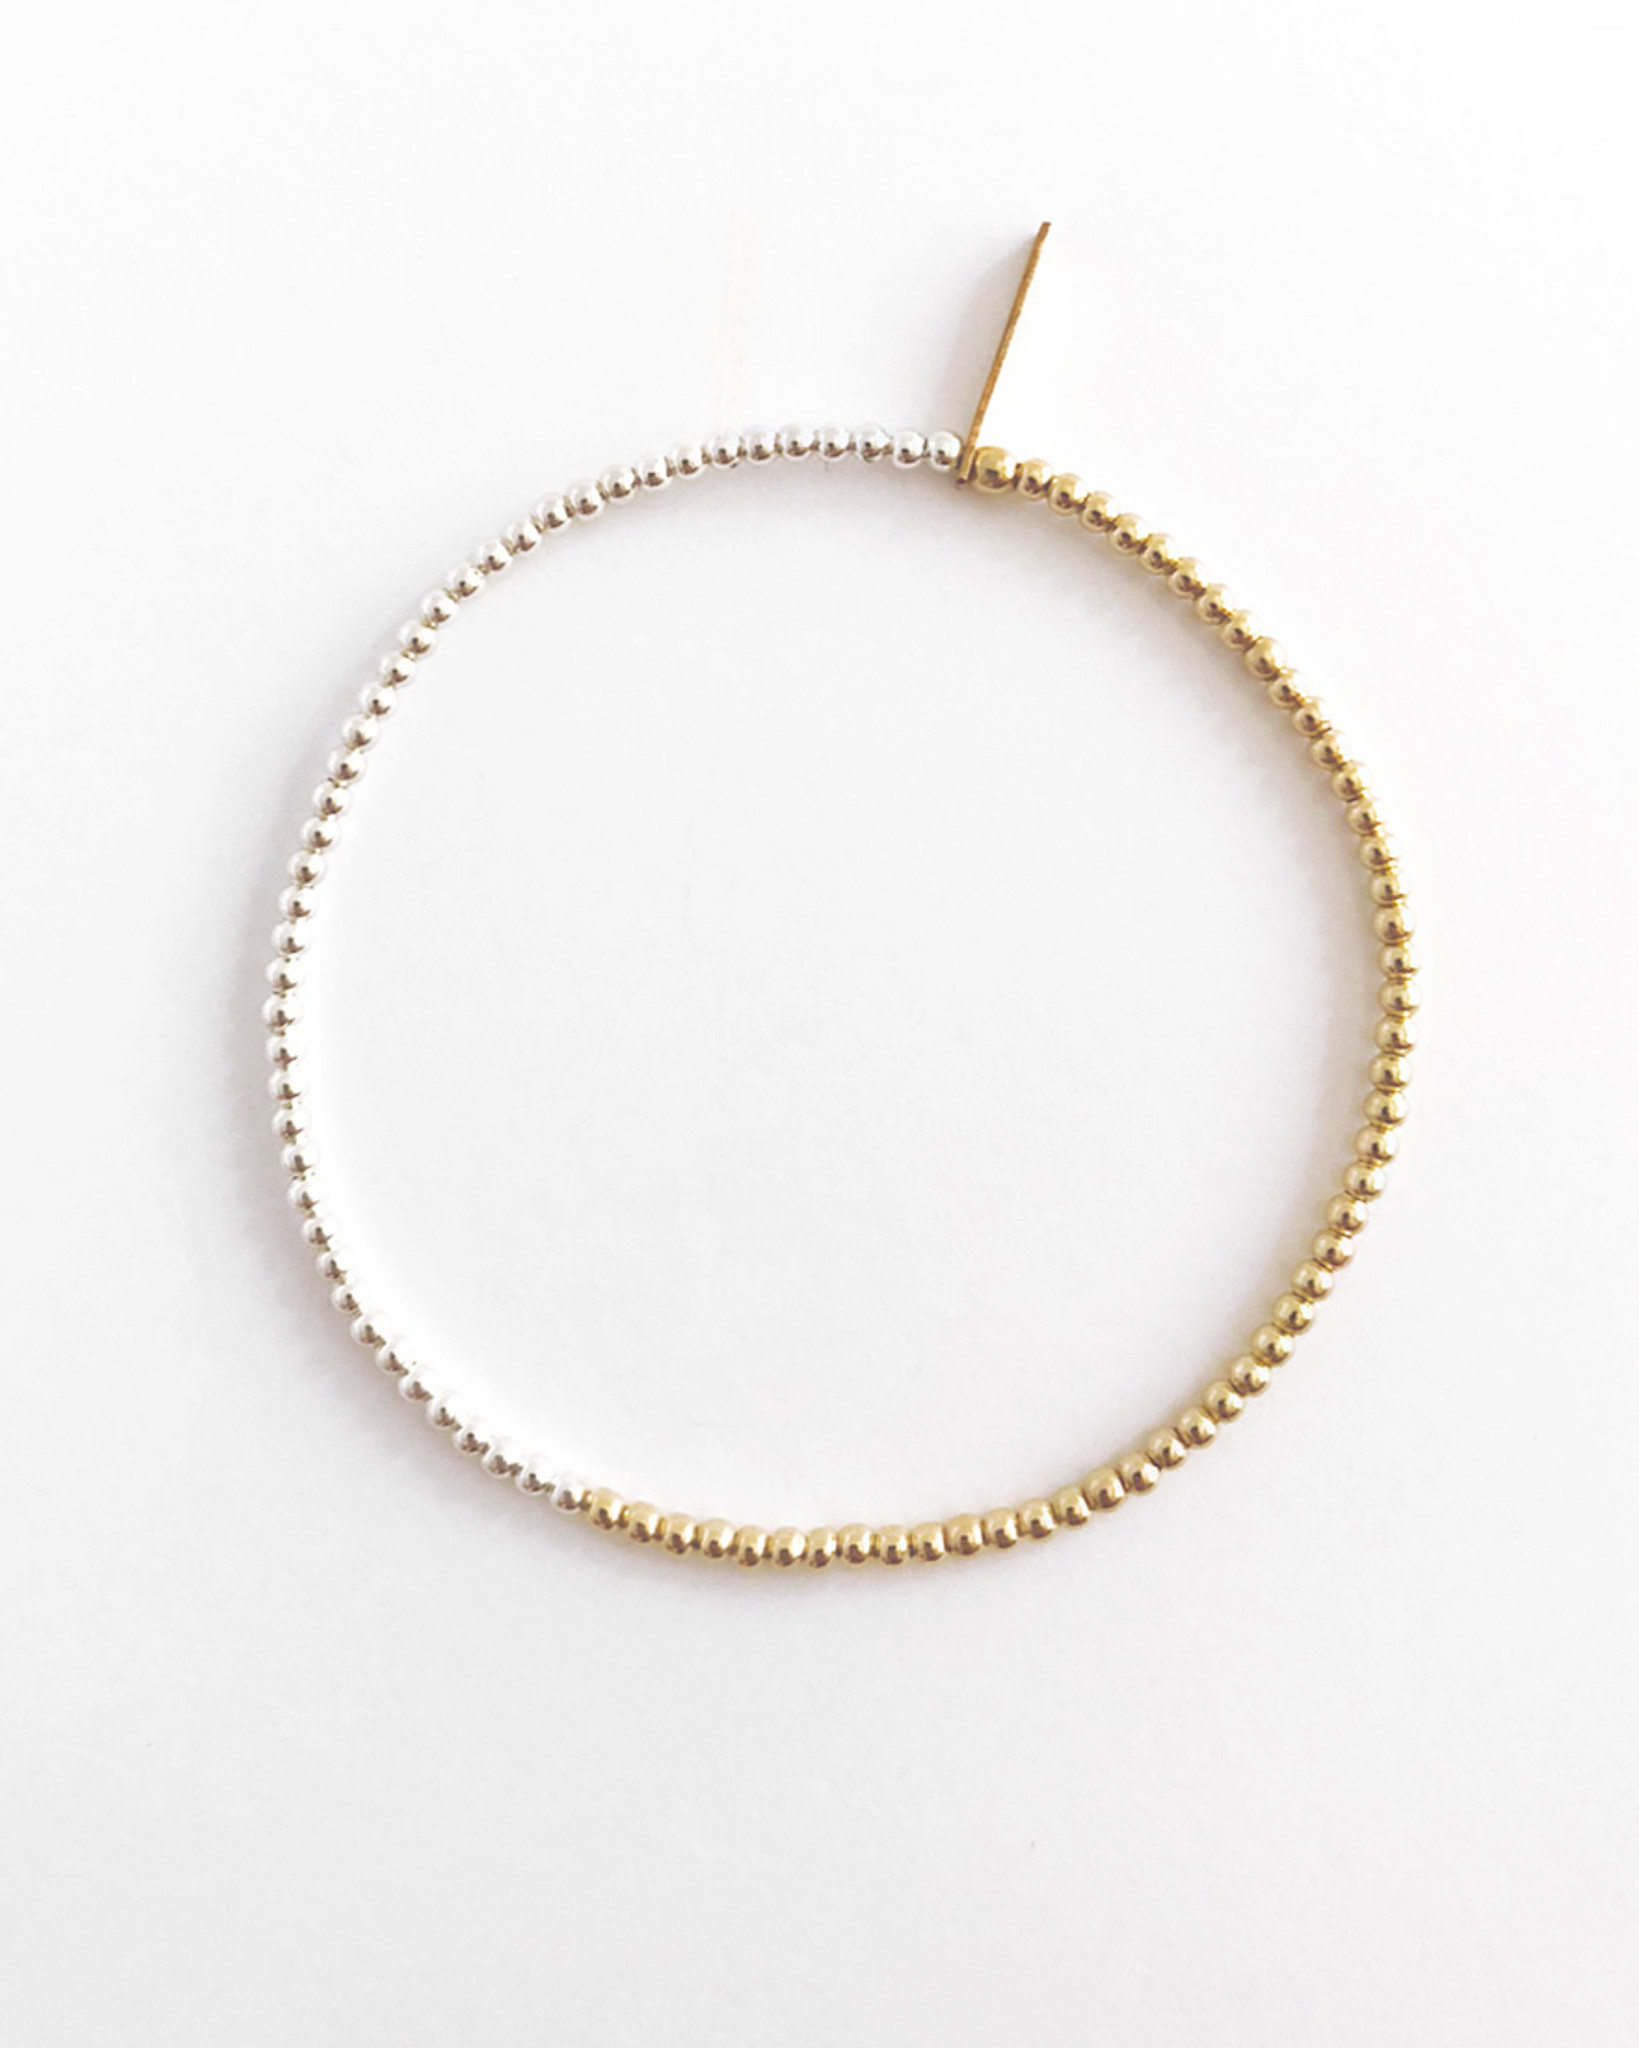 An understated modern bead necklace and bracelet jewelry collection designed by Nektar De Stagni. In this classic design, precious metals Gold and Silver are simply and elegantly paired.